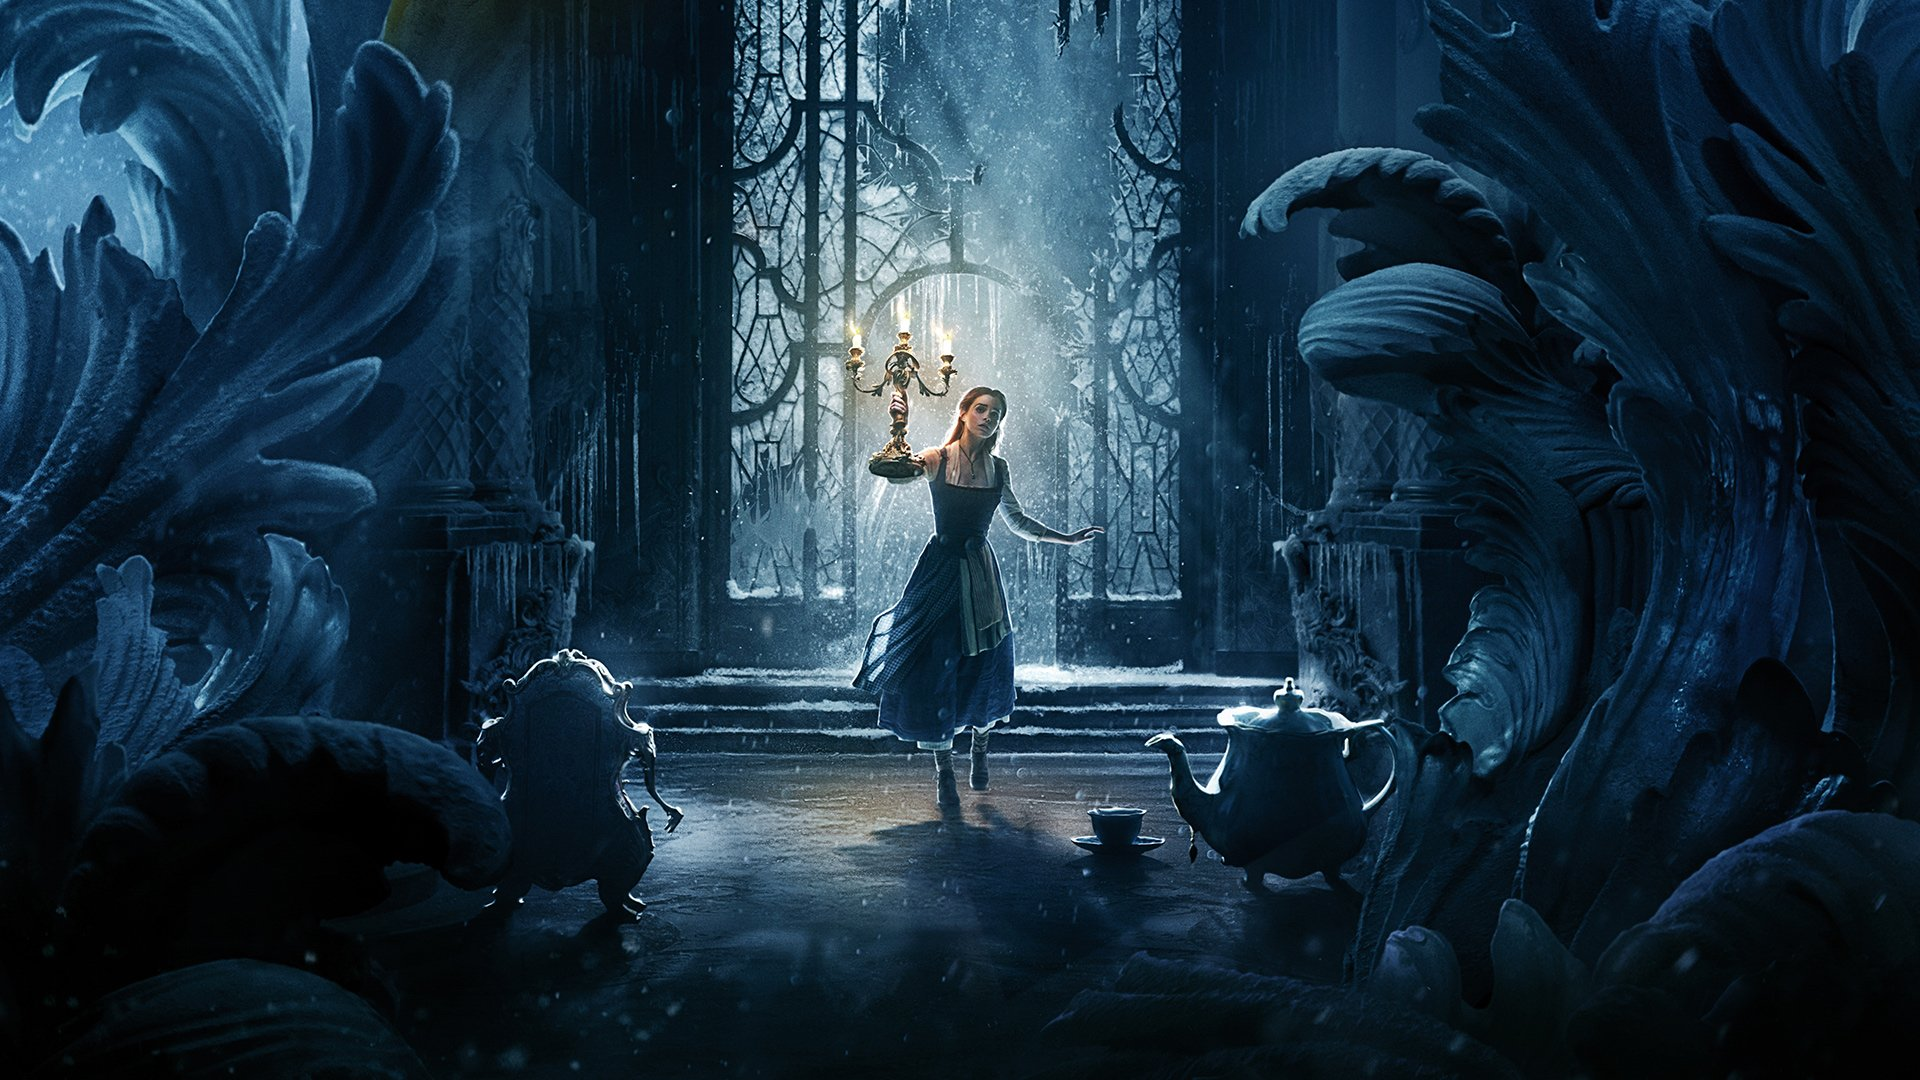 23 Beauty And The Beast 2017 HD Wallpapers